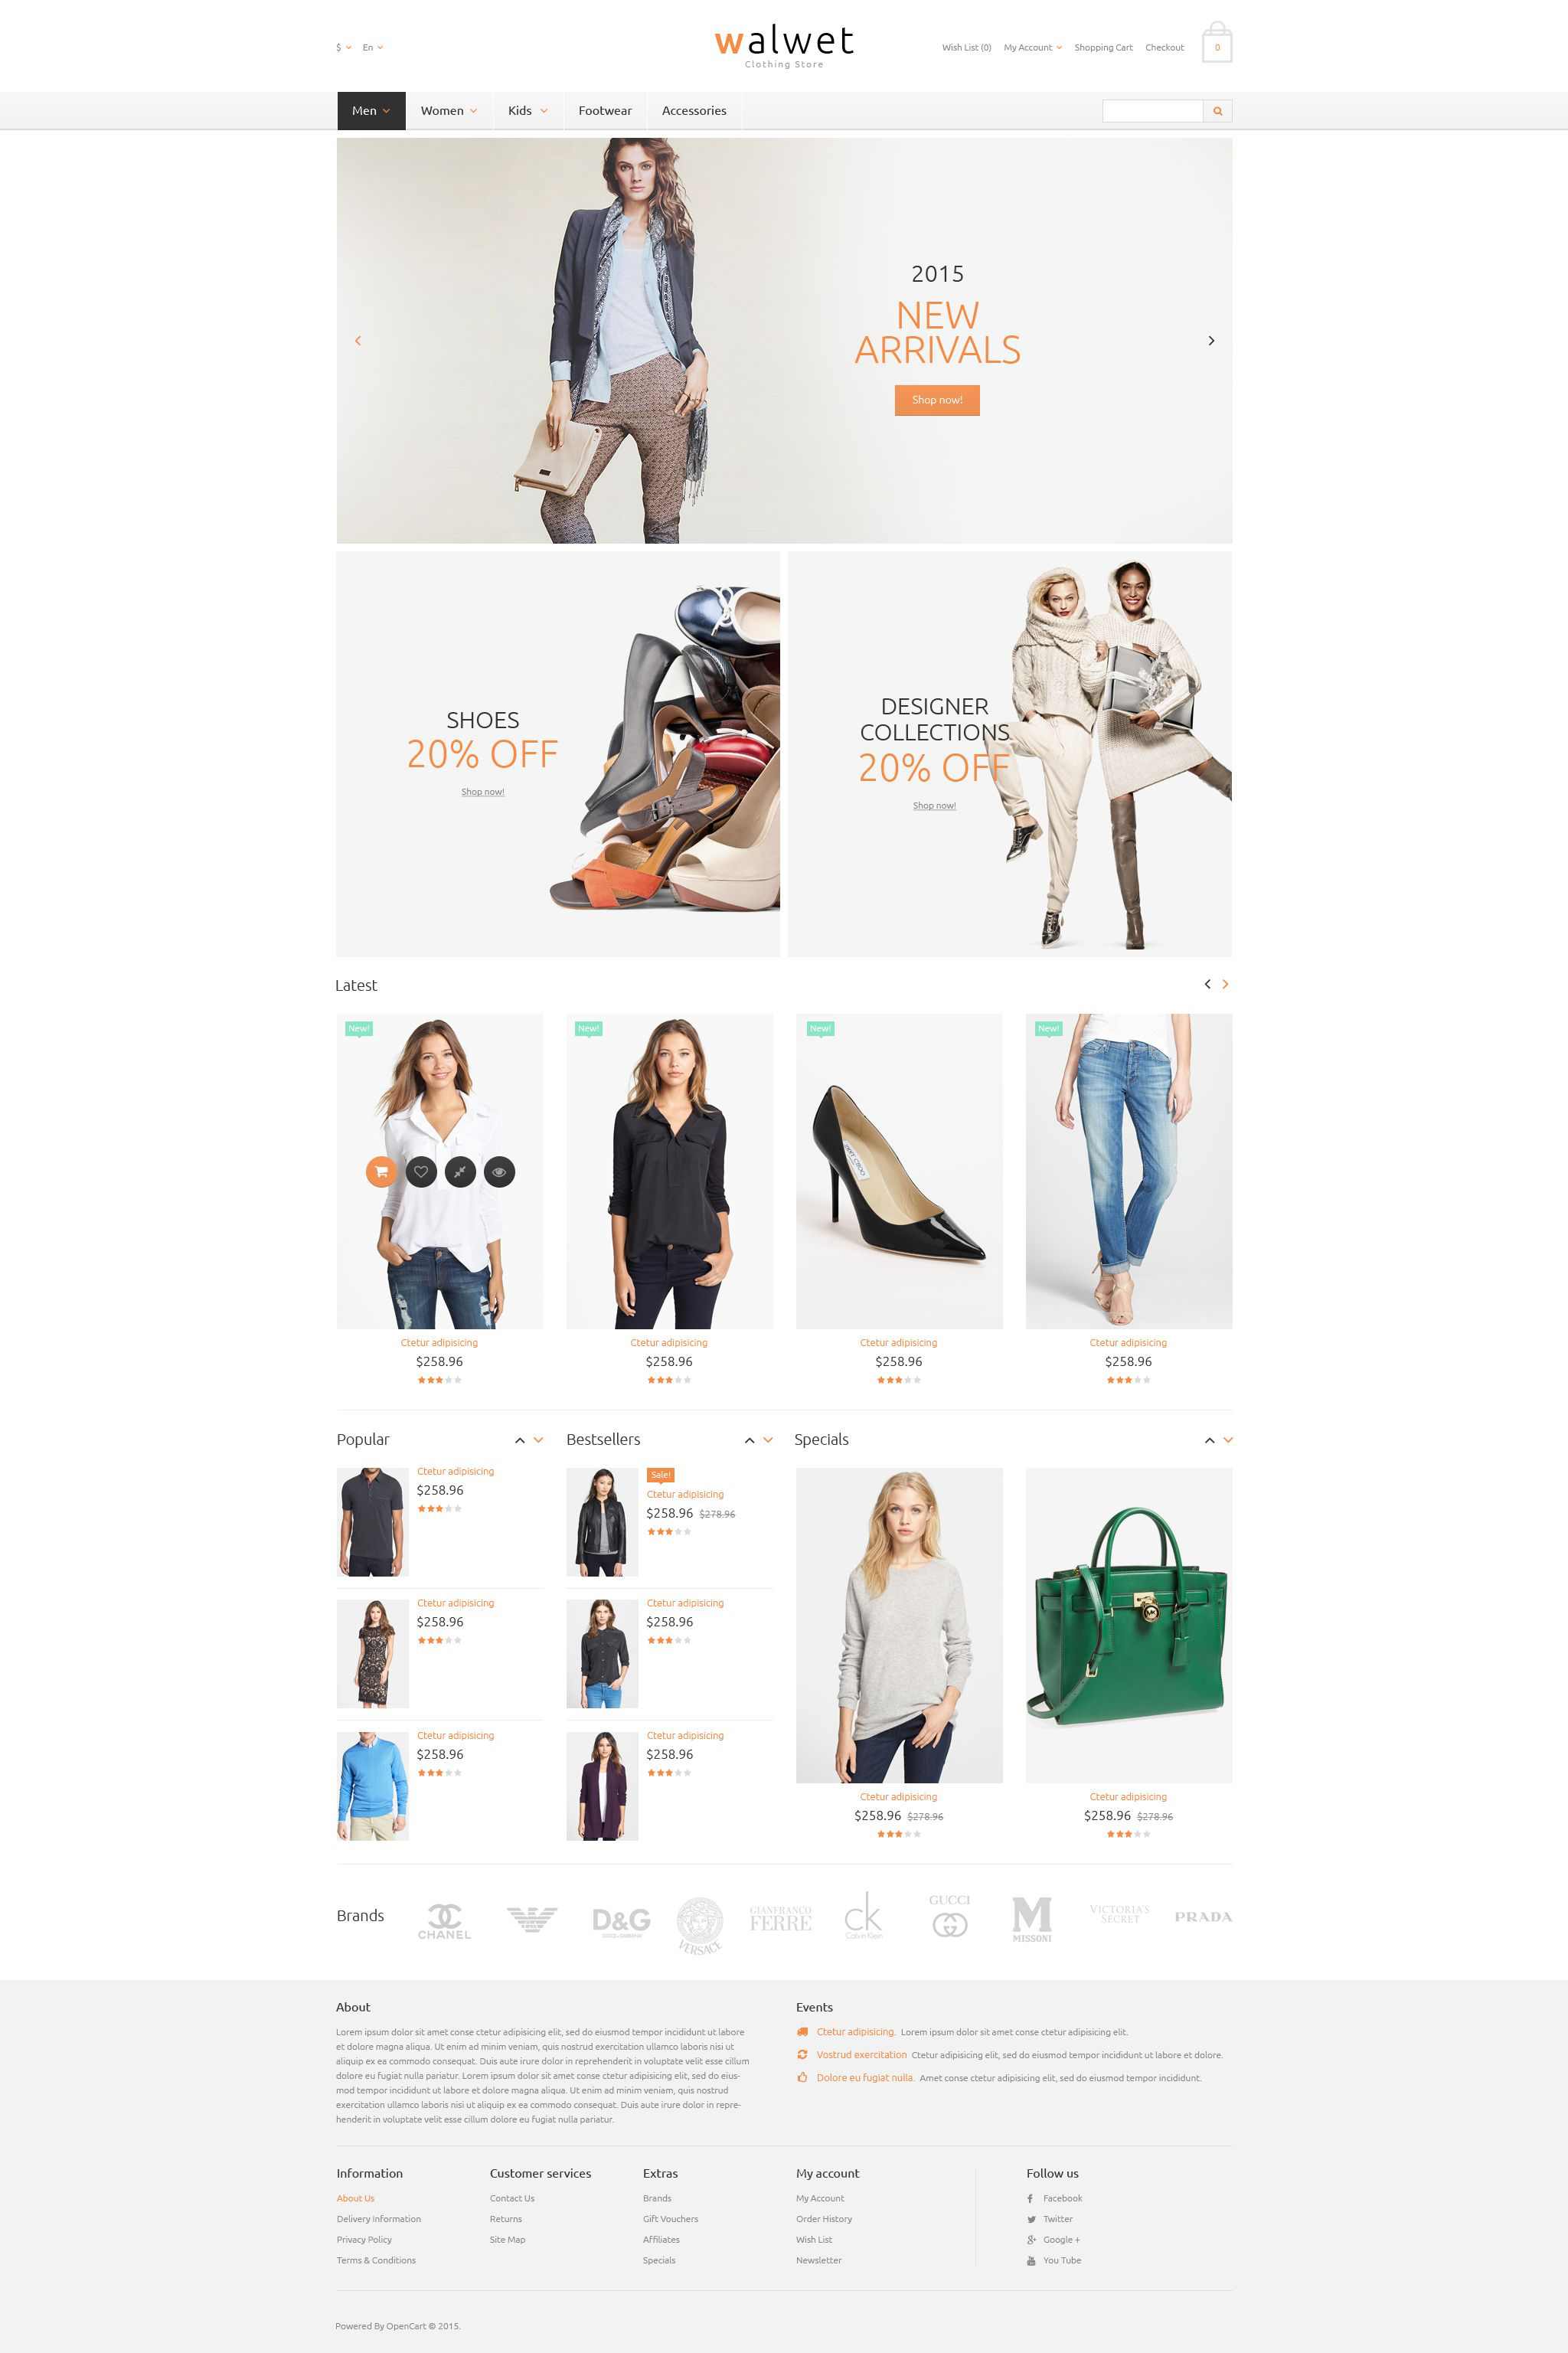 The Walwet Clothes OpenCart Design 53449, one of the best OpenCart templates of its kind (fashion, most popular), also known as walwet clothes OpenCart template, wear OpenCart template, clothing OpenCart template, apparel OpenCart template, work OpenCart template, shoes OpenCart template, gloves OpenCart template, wear OpenCart template, Safety Boots WEAR footwear OpenCart template, shirts OpenCart template, protective OpenCart template, goggles OpenCart template, protective OpenCart template, eyewear and related with walwet clothes, wear, clothing, apparel, work, shoes, gloves, wear, Safety Boots WEAR footwear, shirts, protective, goggles, protective, eyewear, etc.